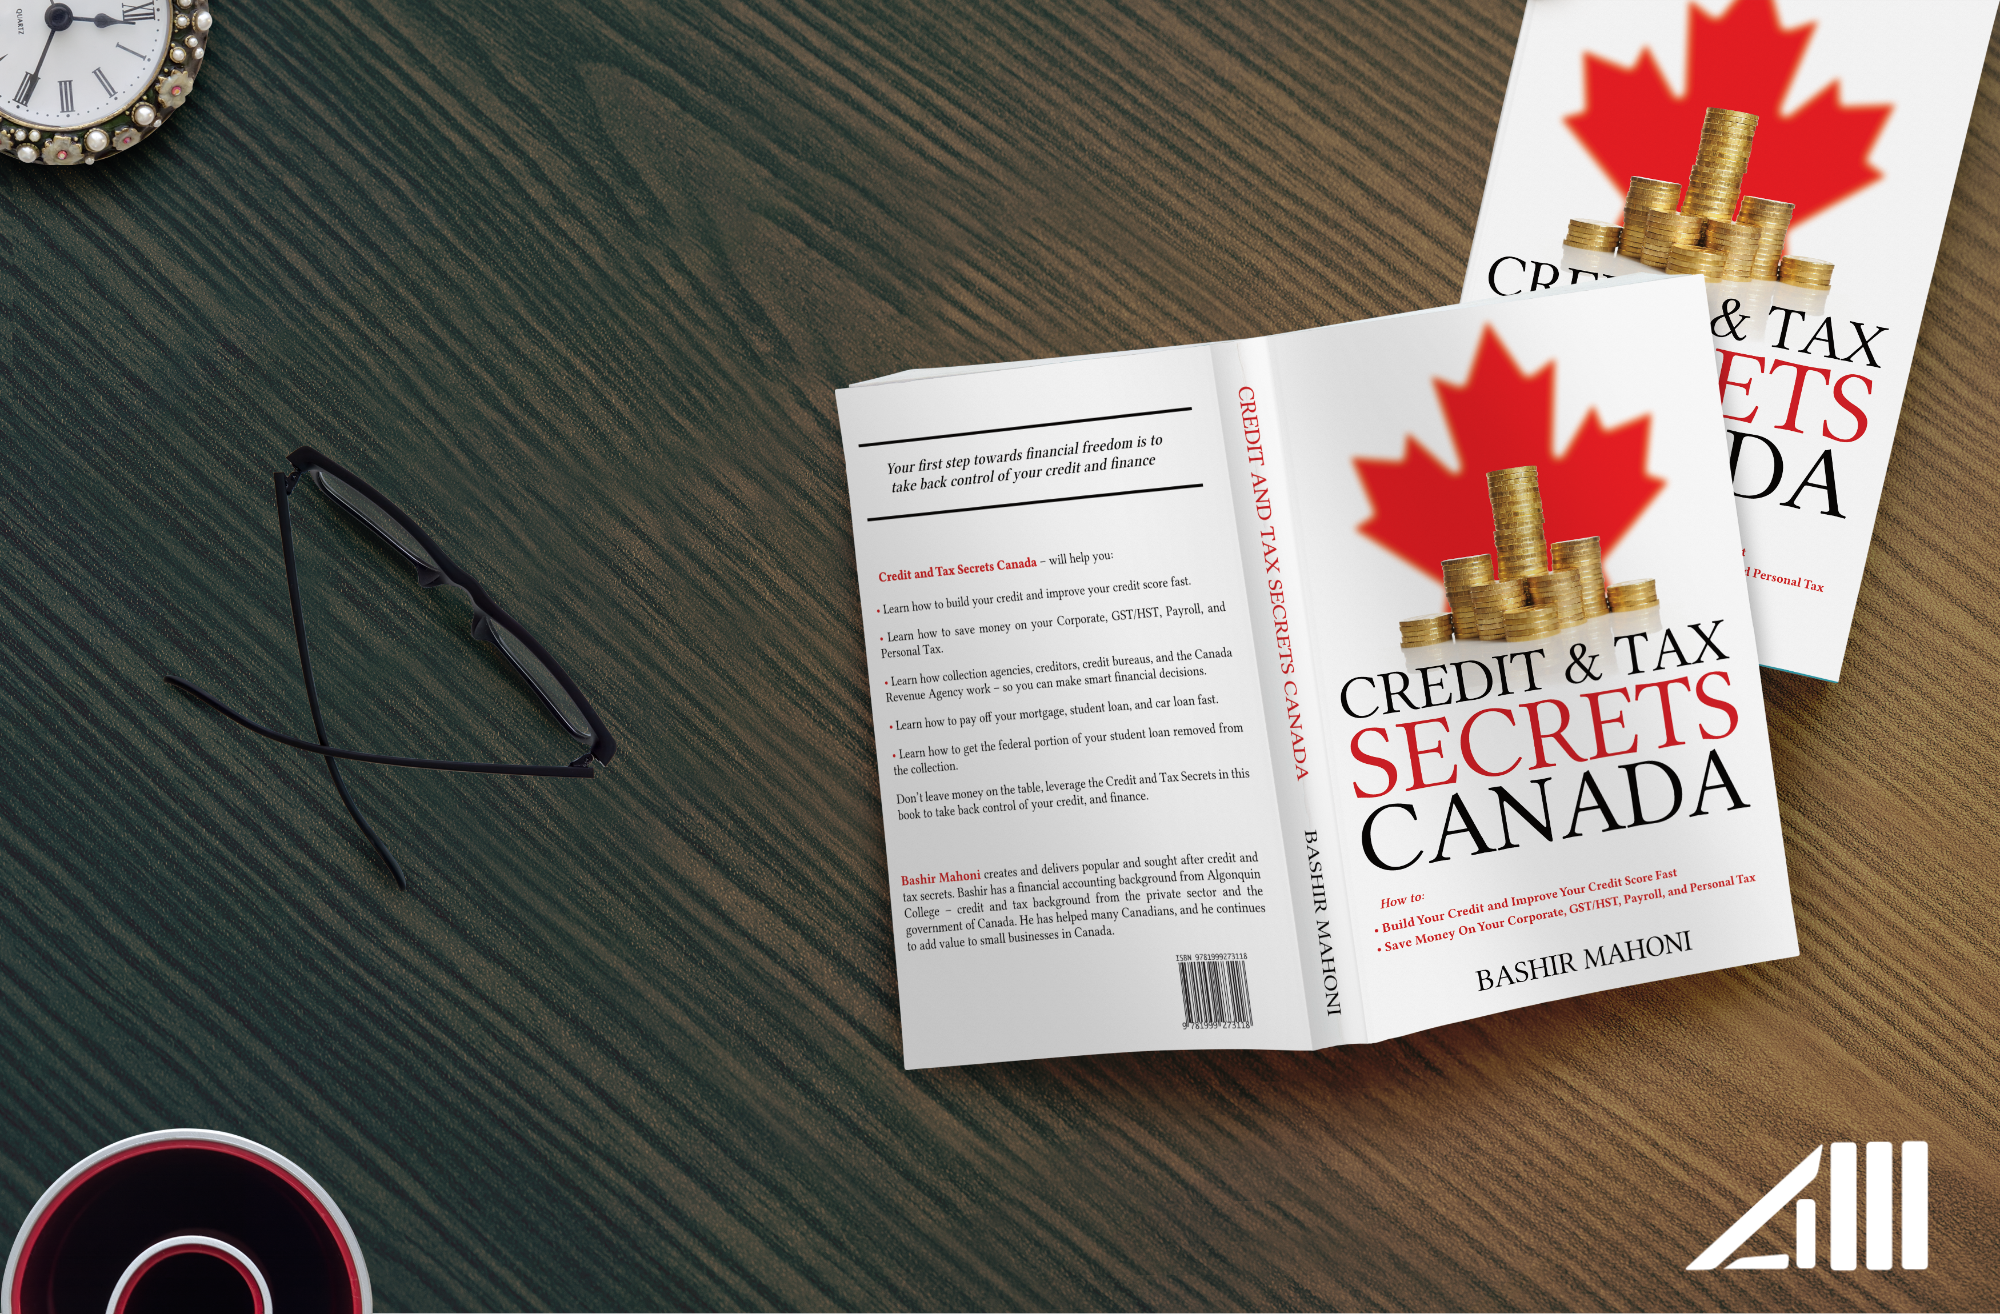 Credit & Tax Secrets Canada